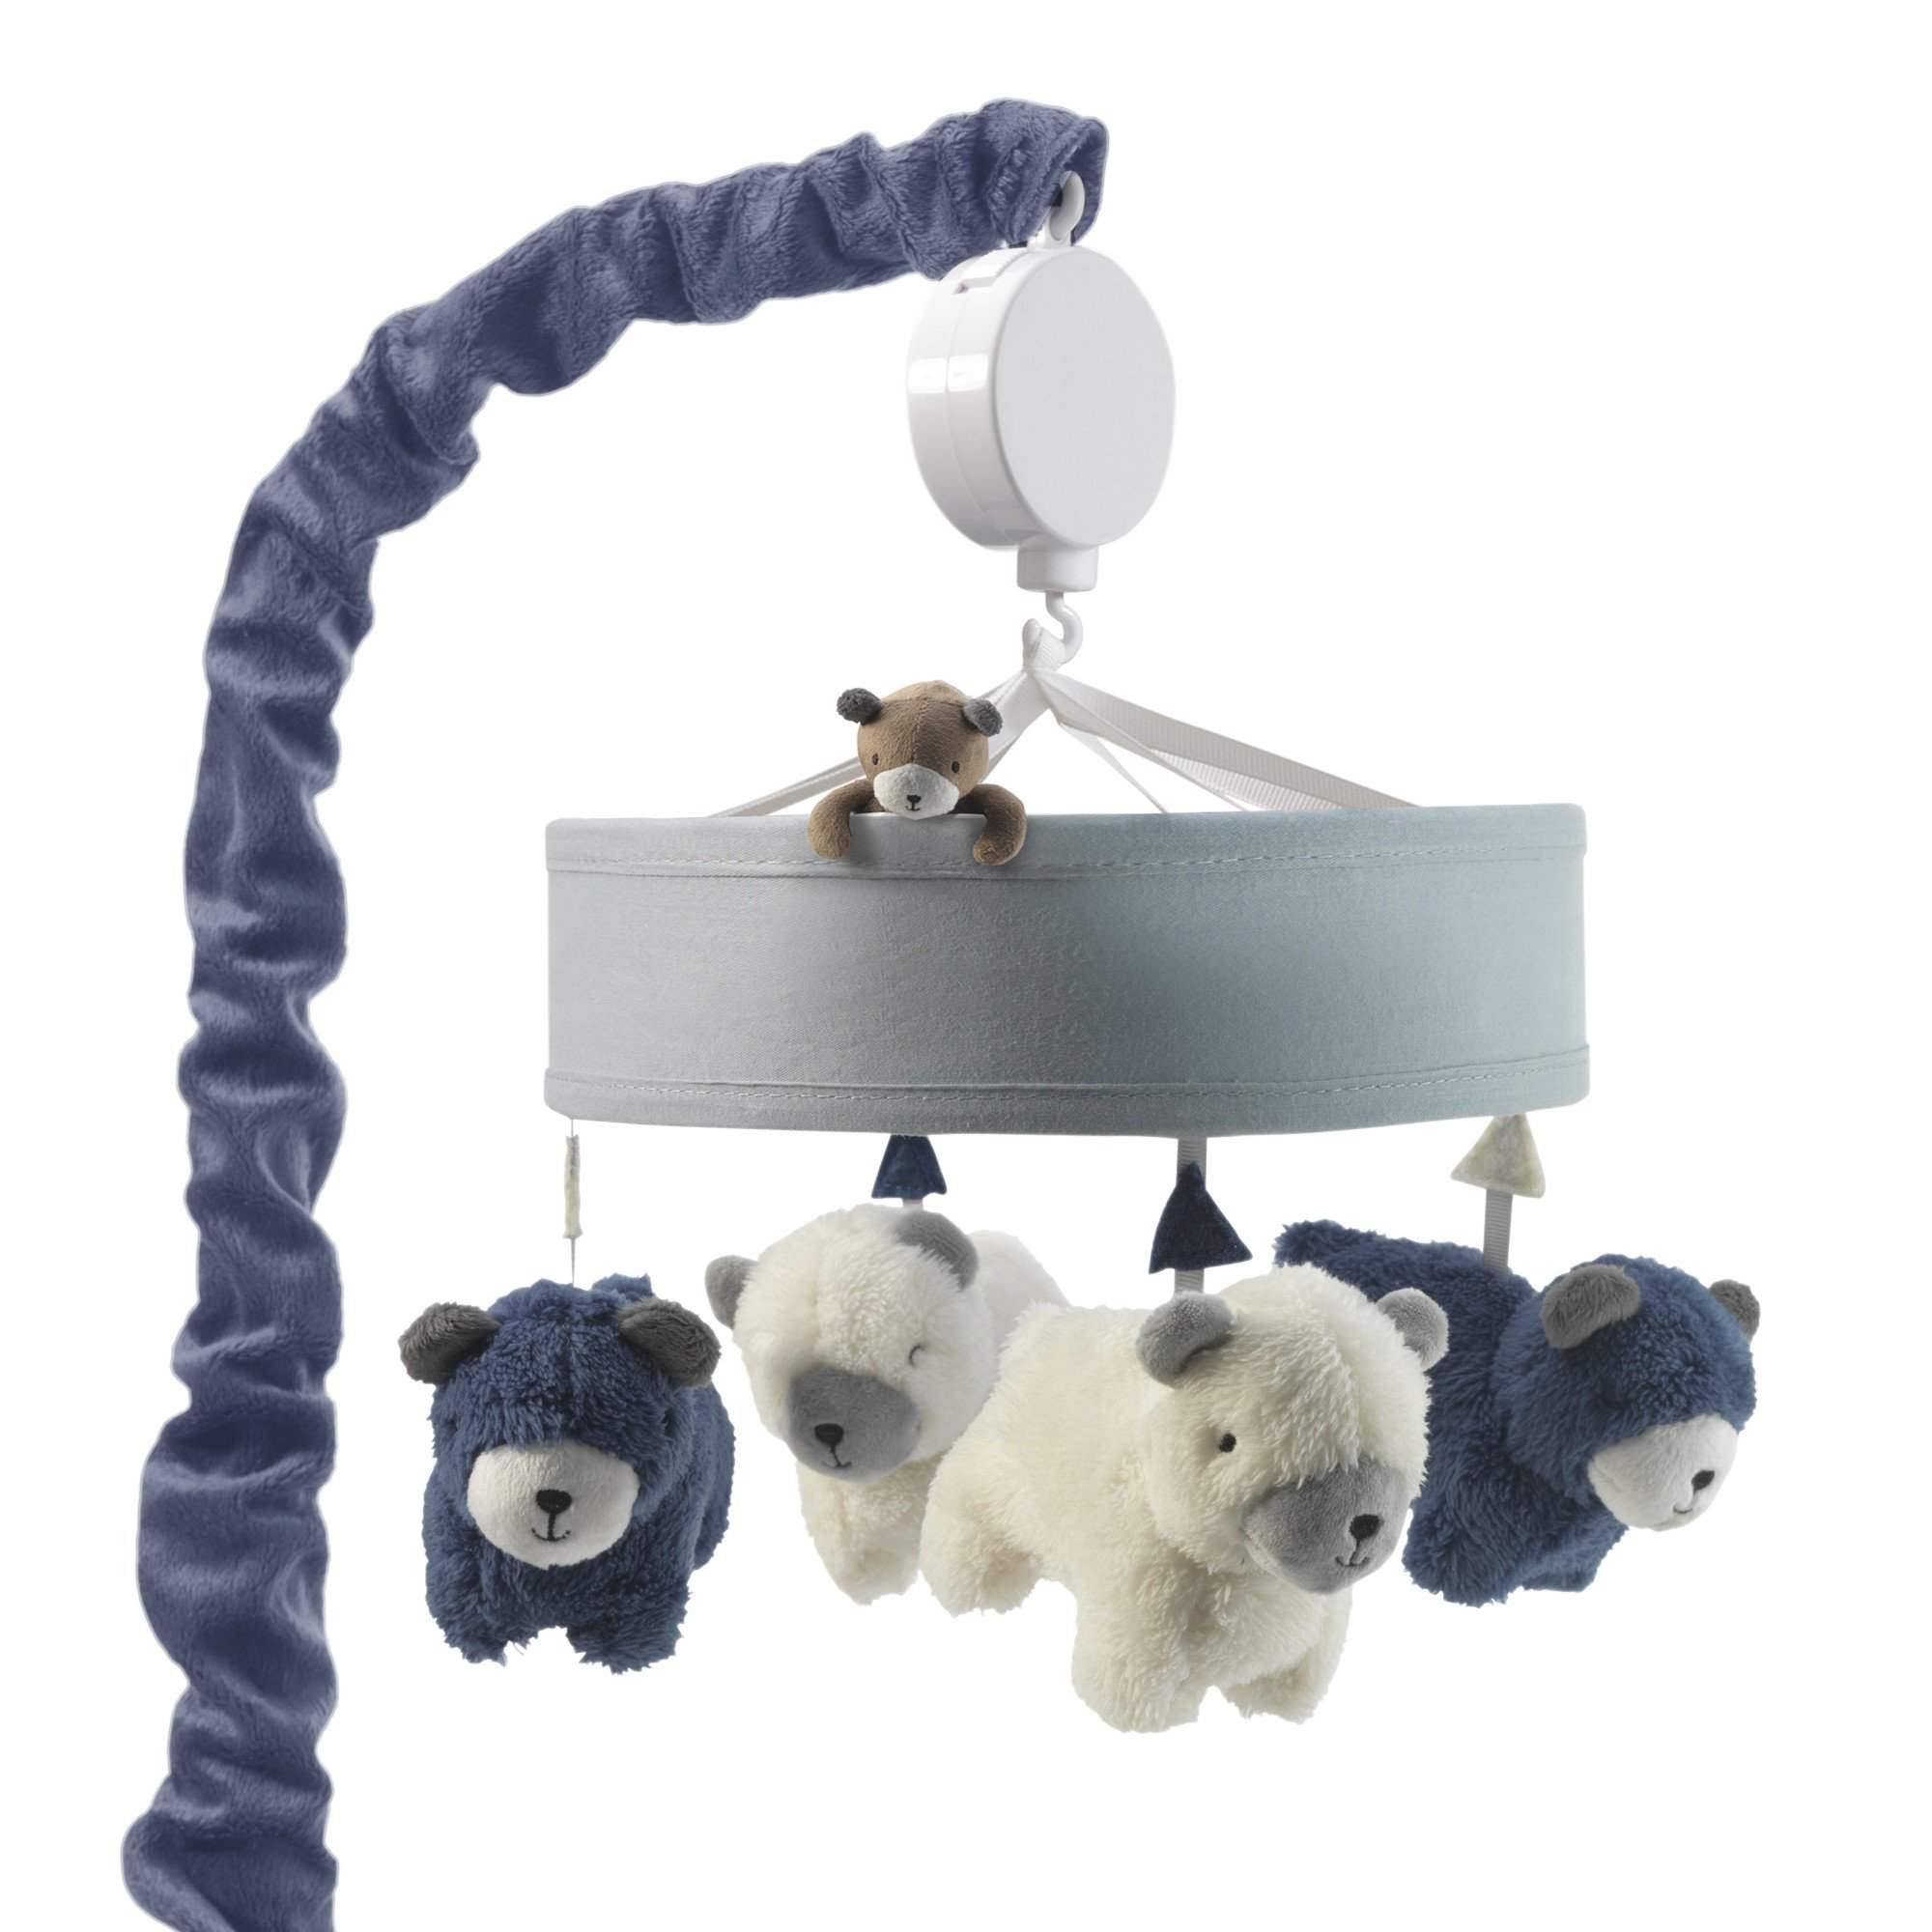 Lambs & Ivy Signature Montana Musical Baby Crib Mobile Blue, White, Animals by Lambs %26 Ivy